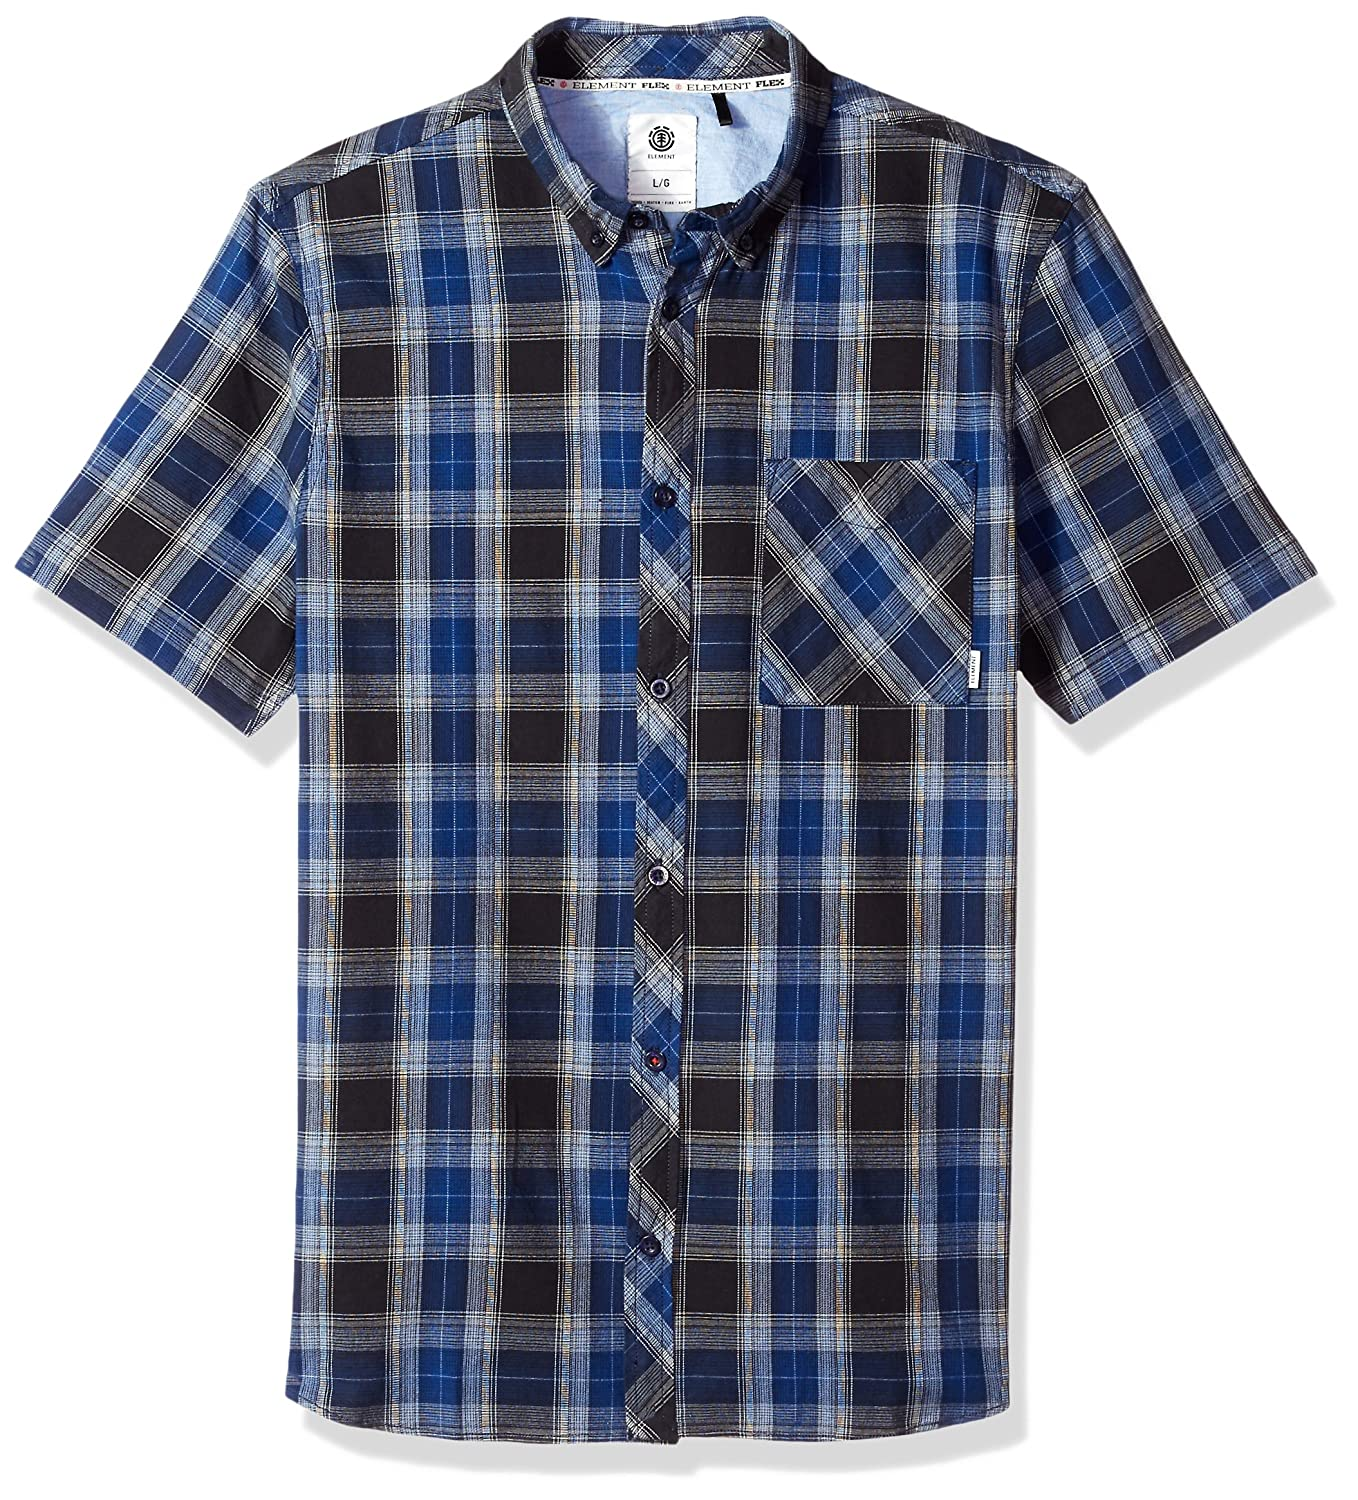 Element SHIRT メンズ B0733VZN26 X-Large|Blue Fade Blue Fade X-Large